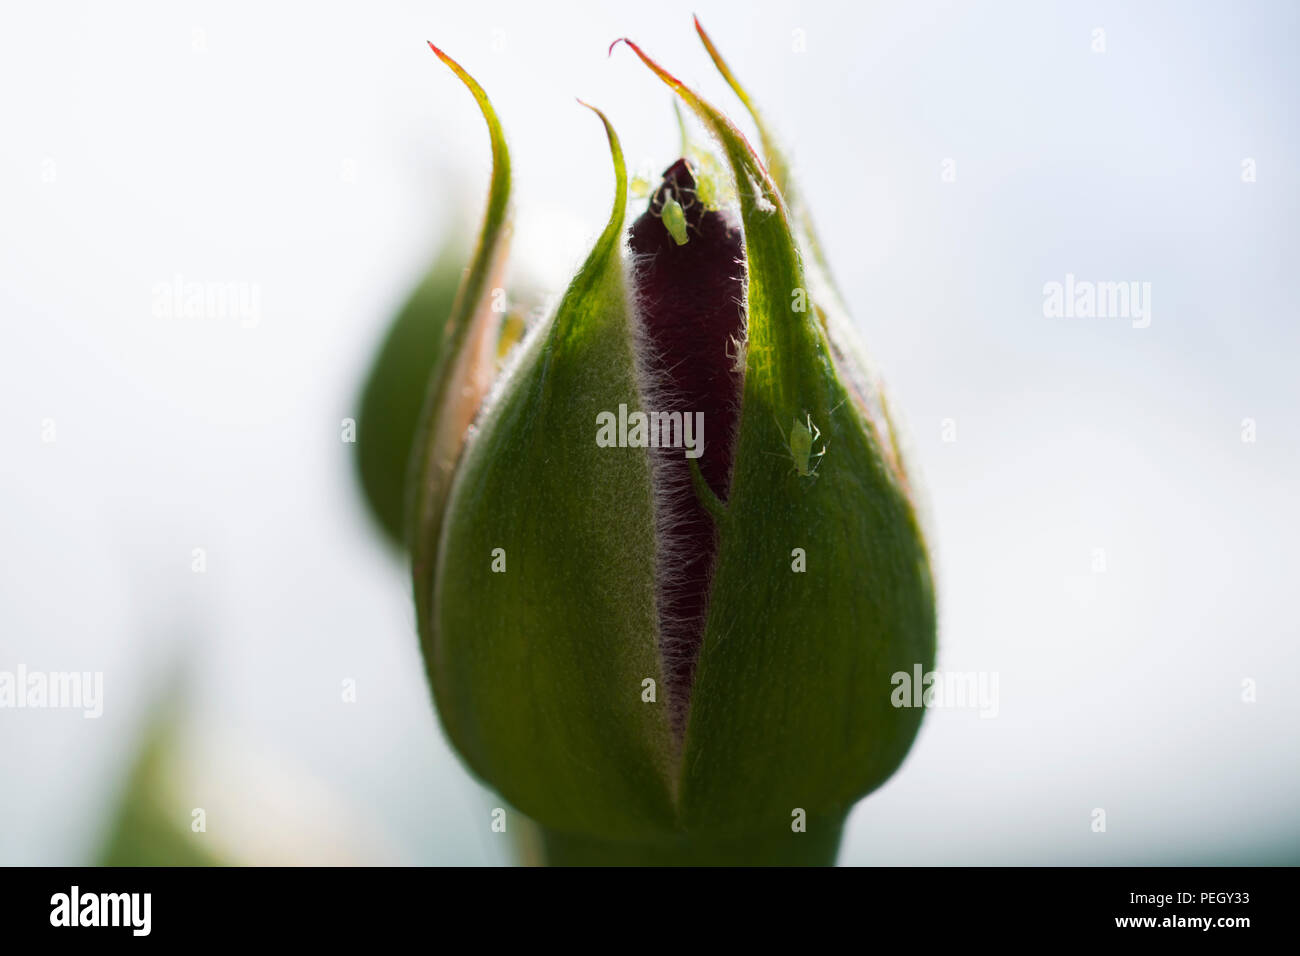 A delicate plant bud invaded by fleas with a white background Stock Photo